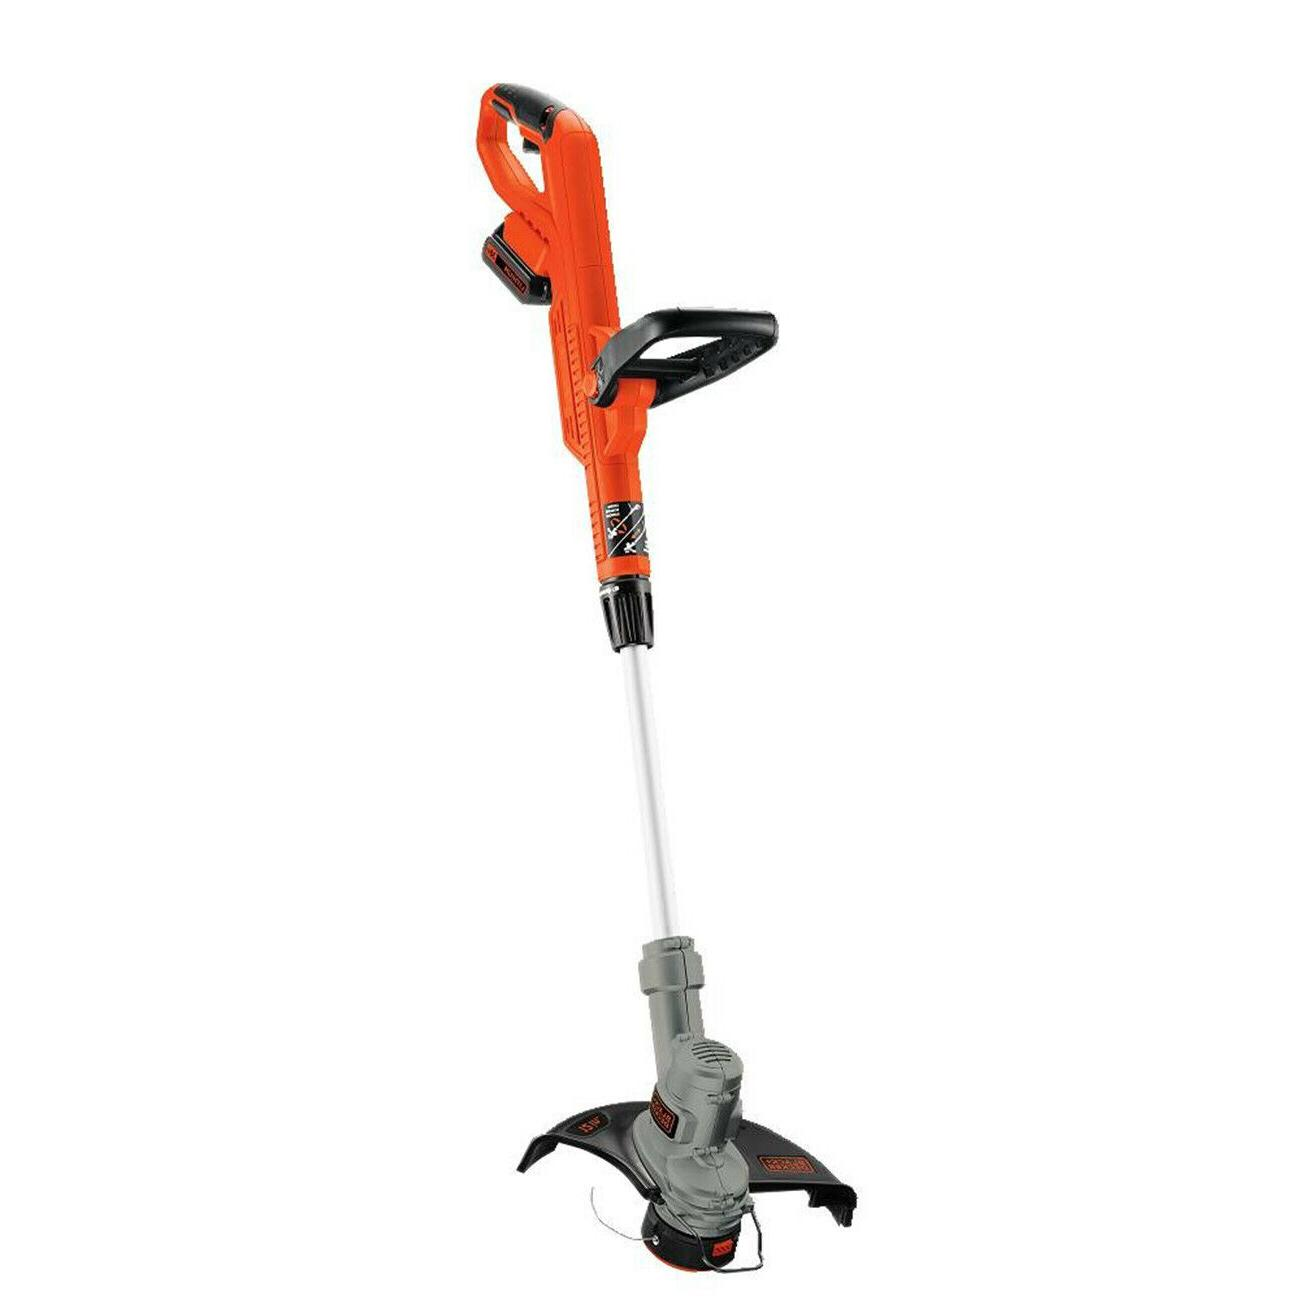 Black Decker Cordless Weed Eater String Trimmer Edger New